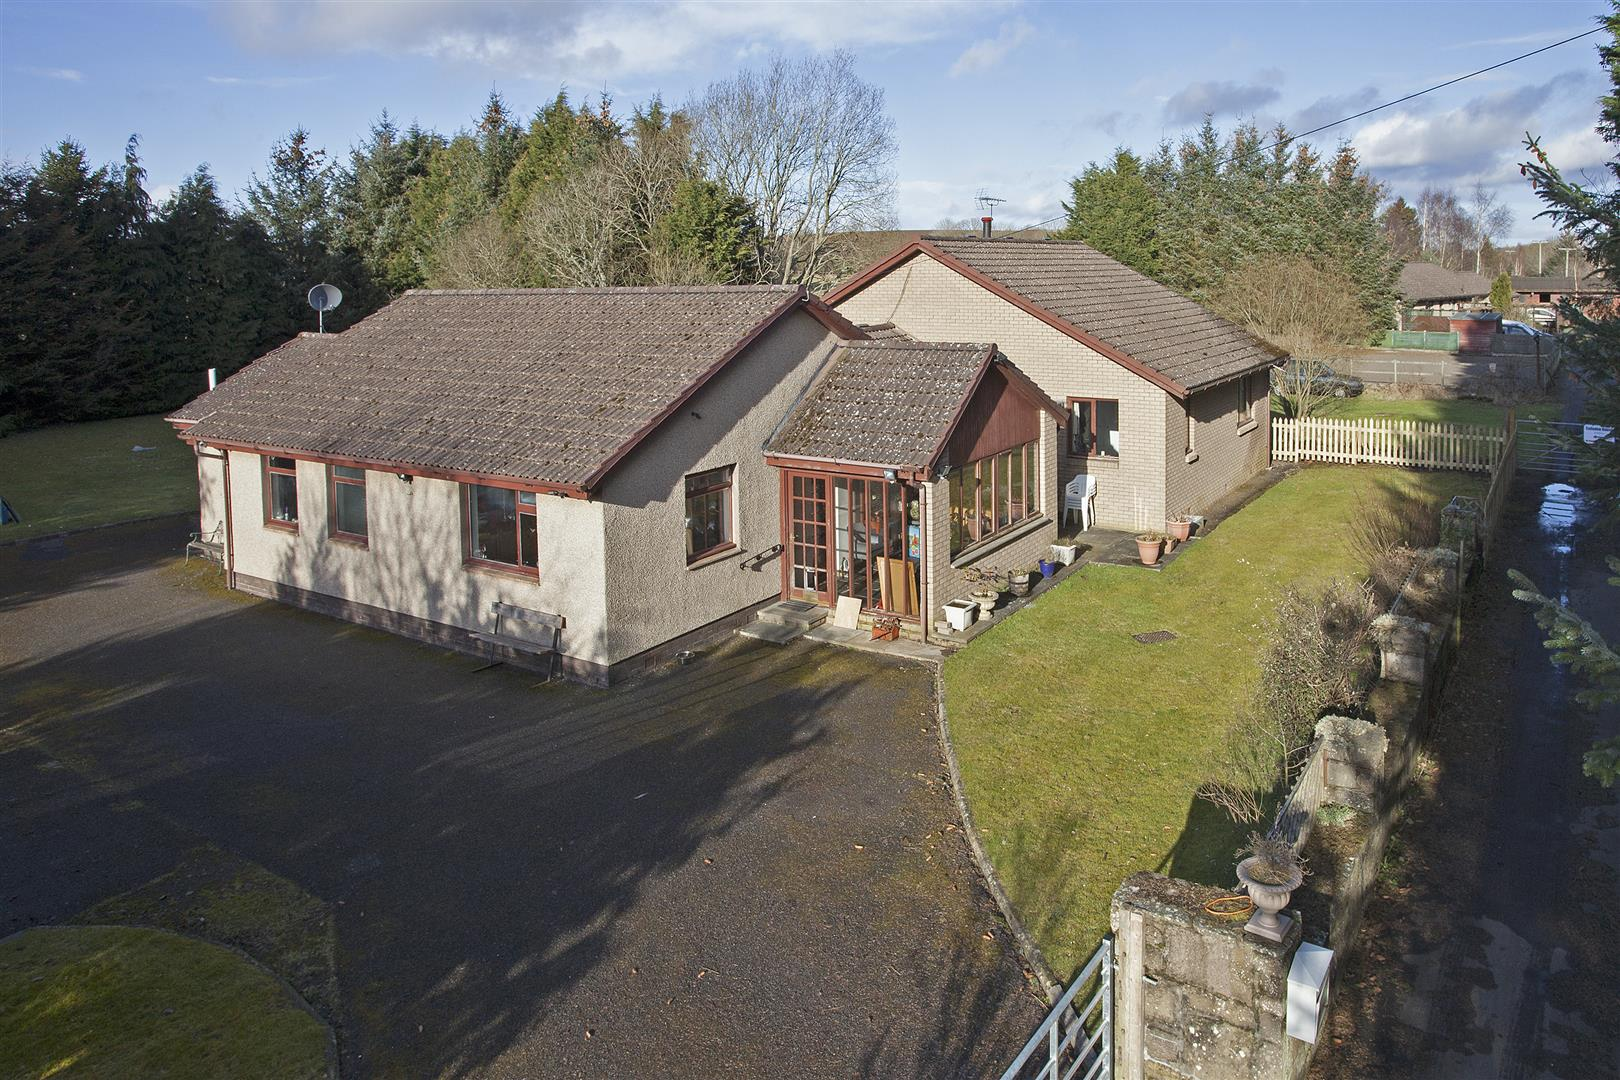 Six Acres, Stanley, Perthshire, PH1 4NW, UK